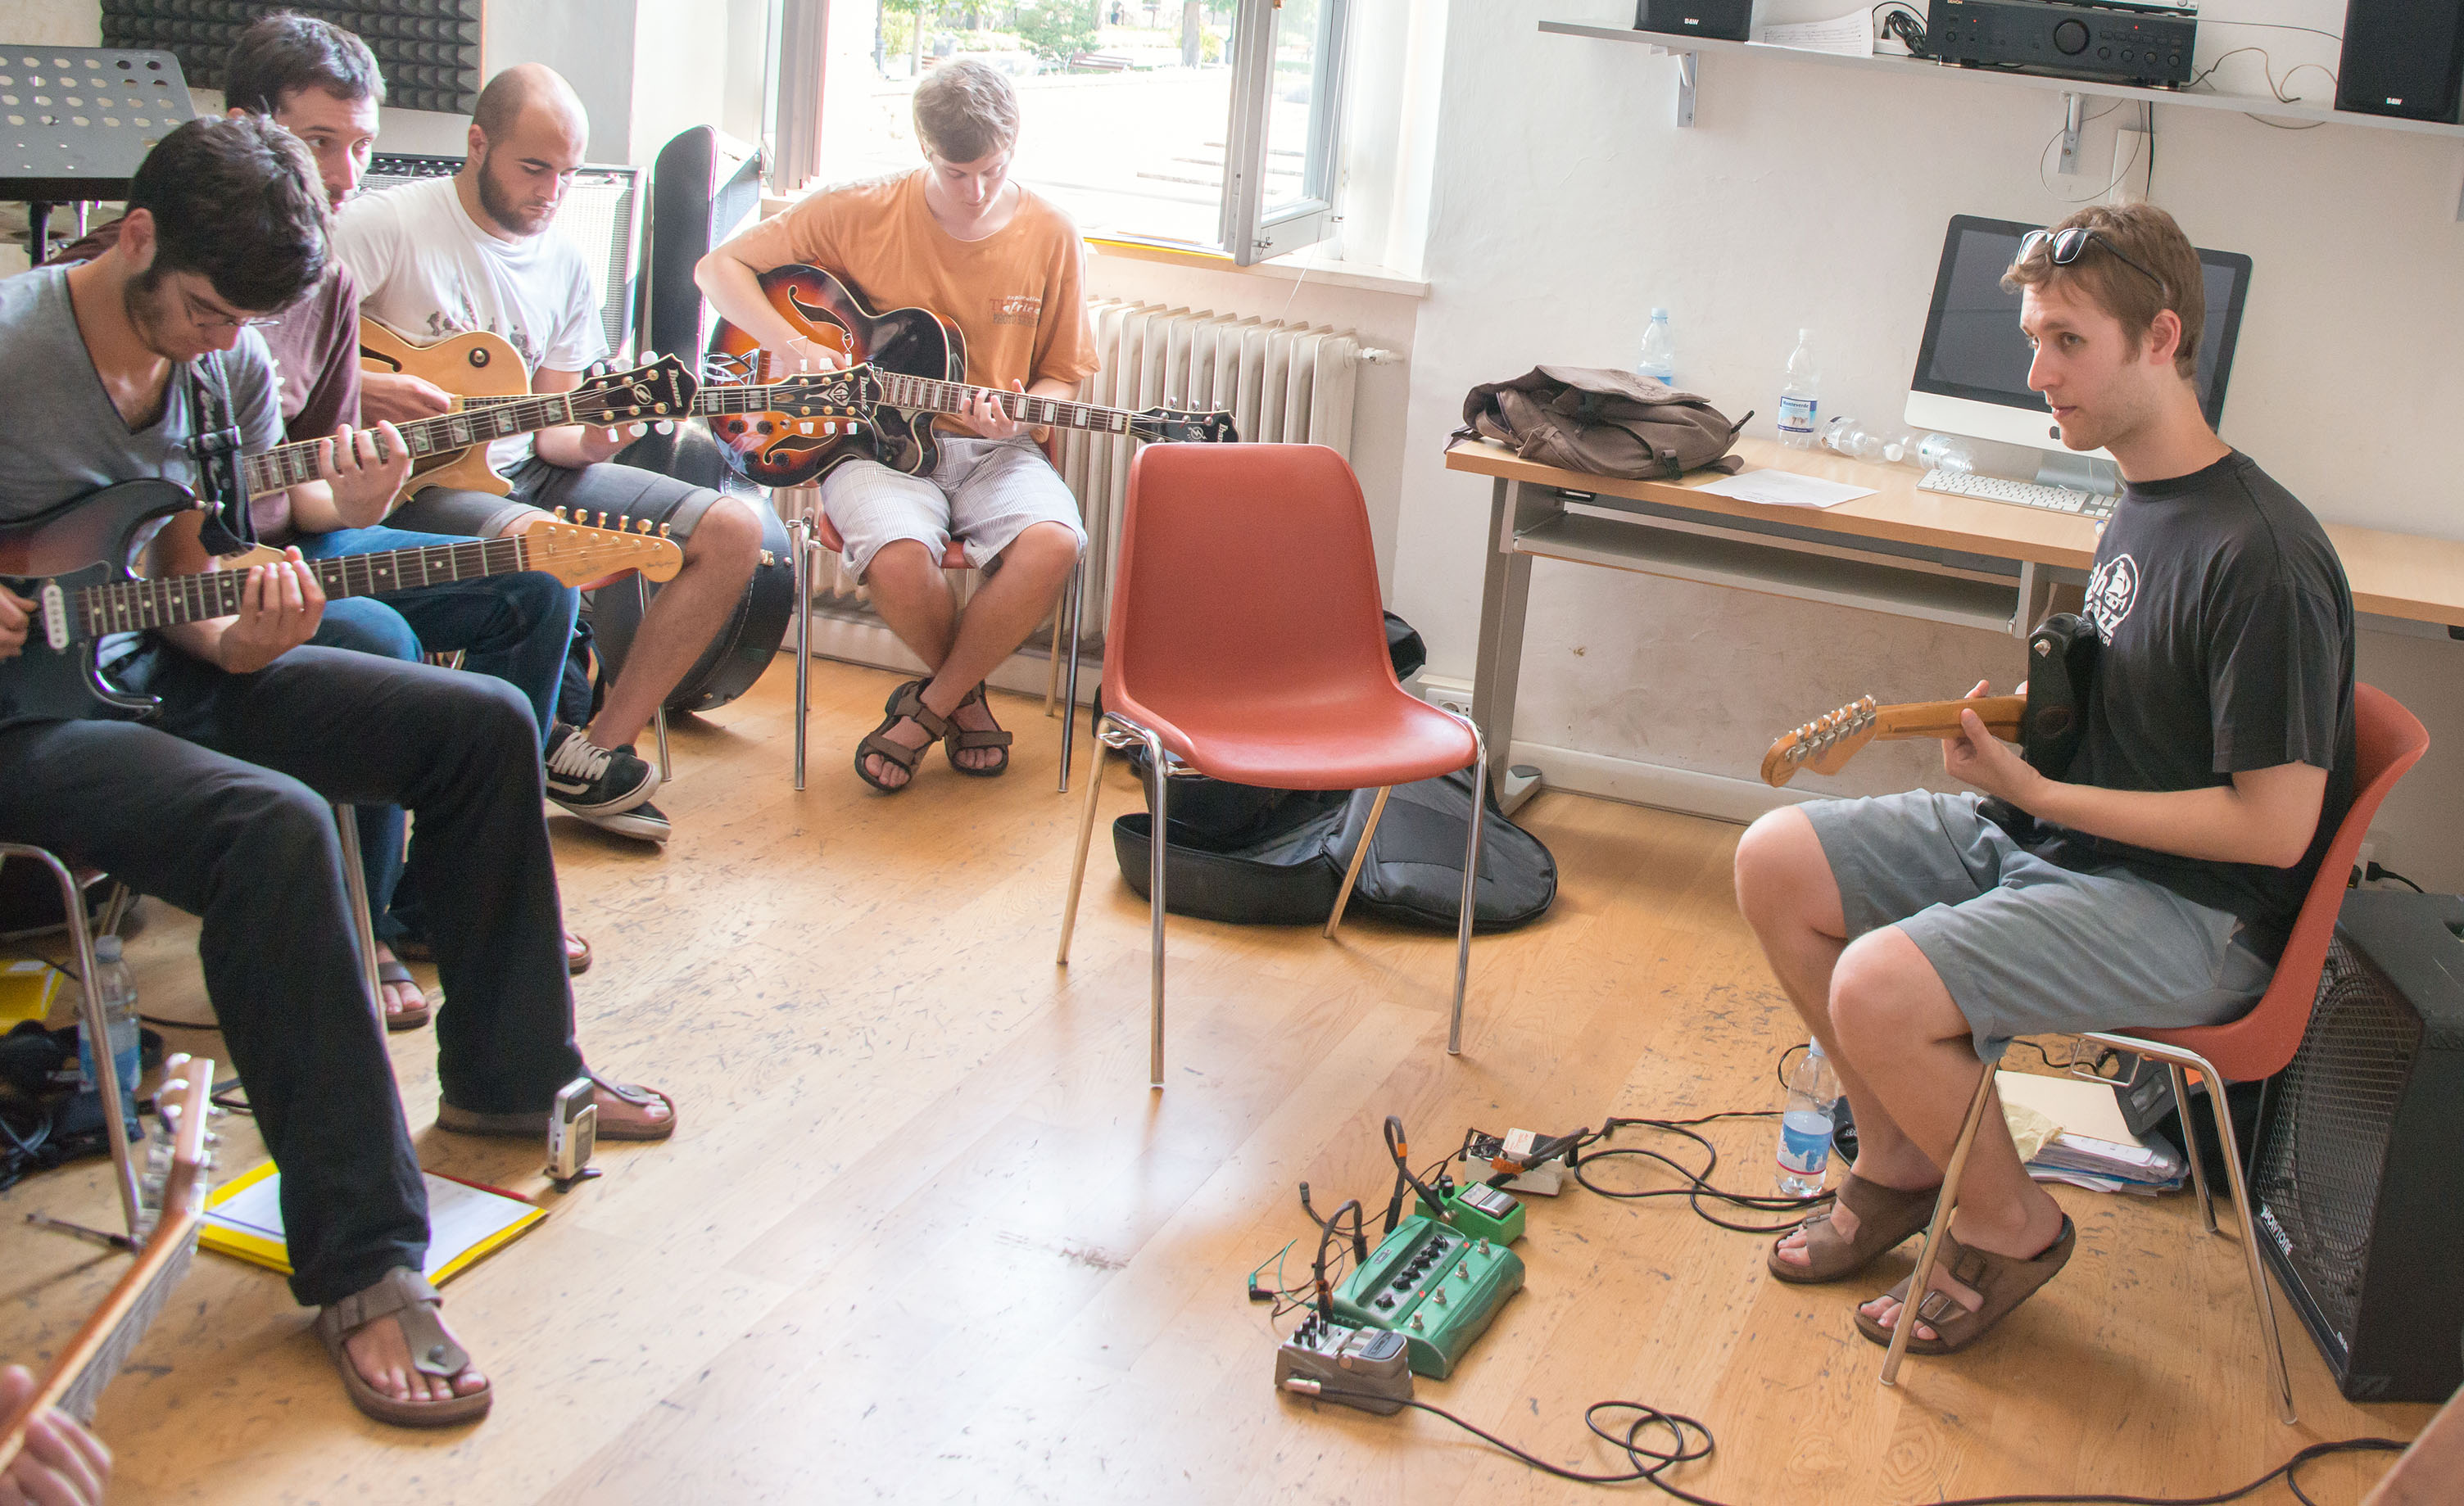 Nir felder guitar class, 2013 siena jazz academy summer workshop